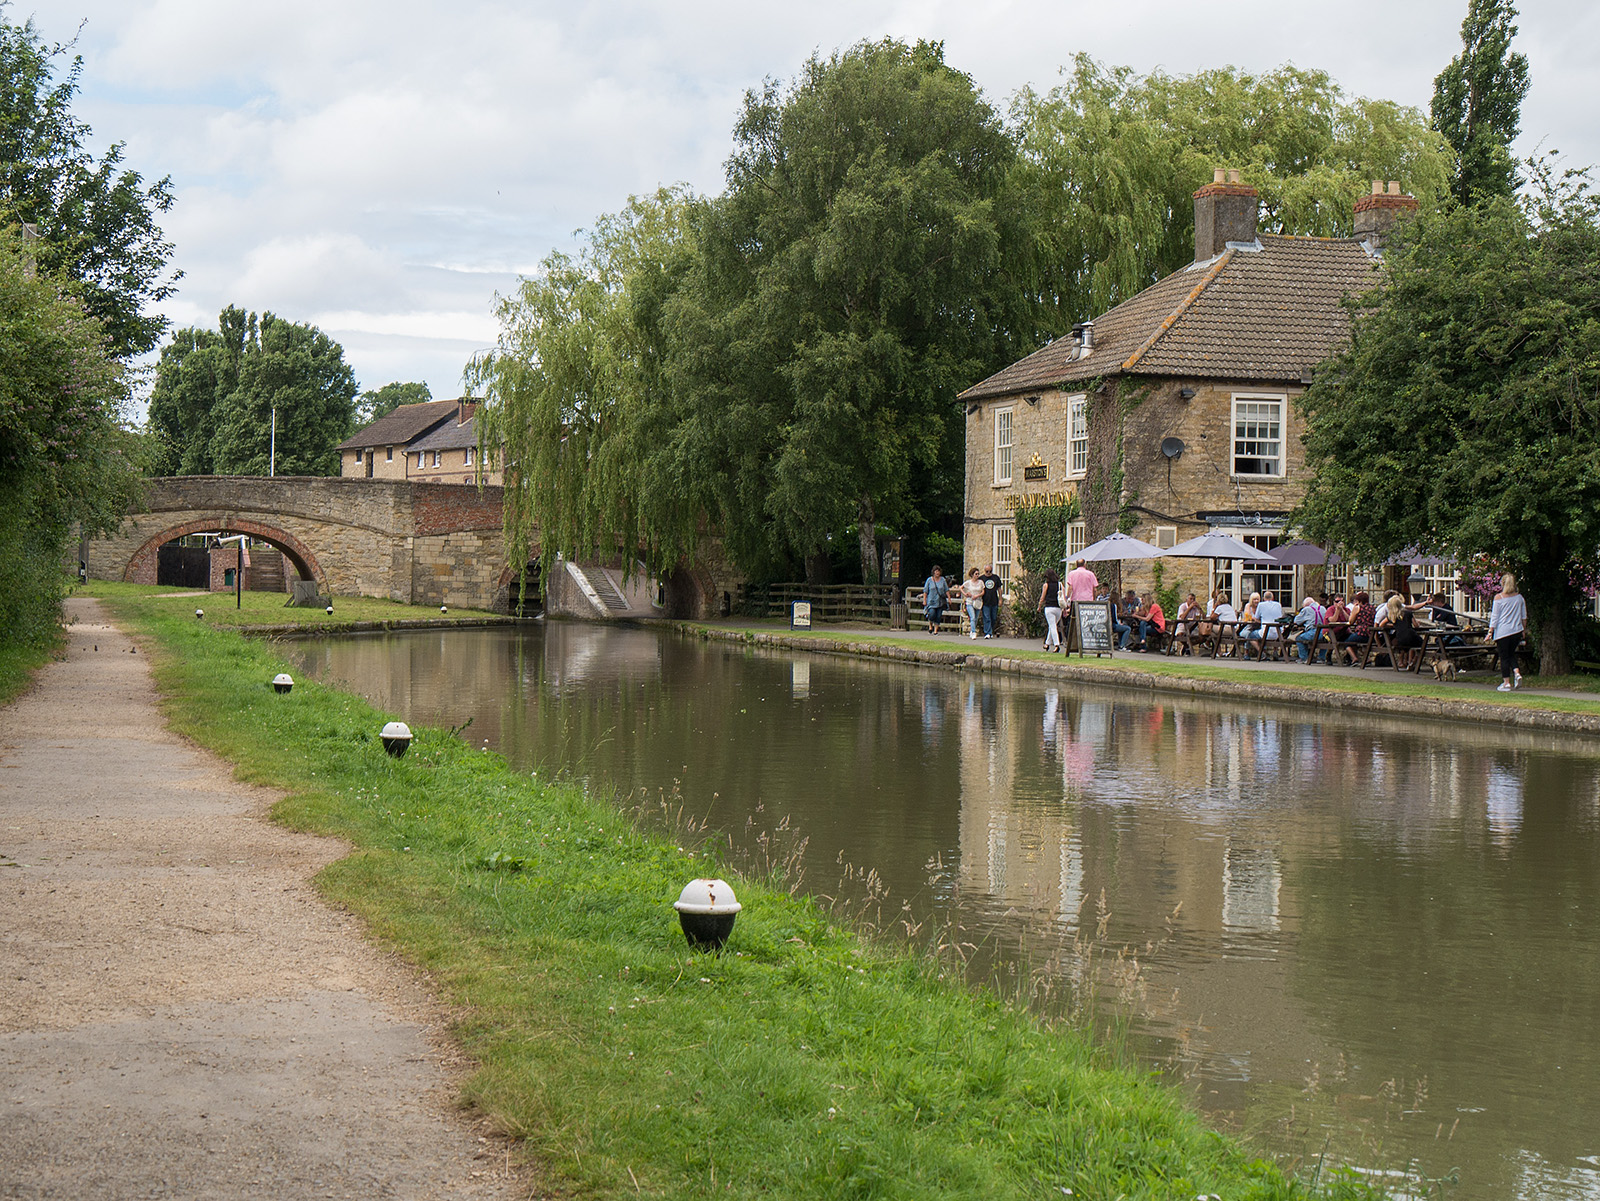 Approaching the Navigation pub. Note the wider canal and the double bridge but only one lock (RHS)